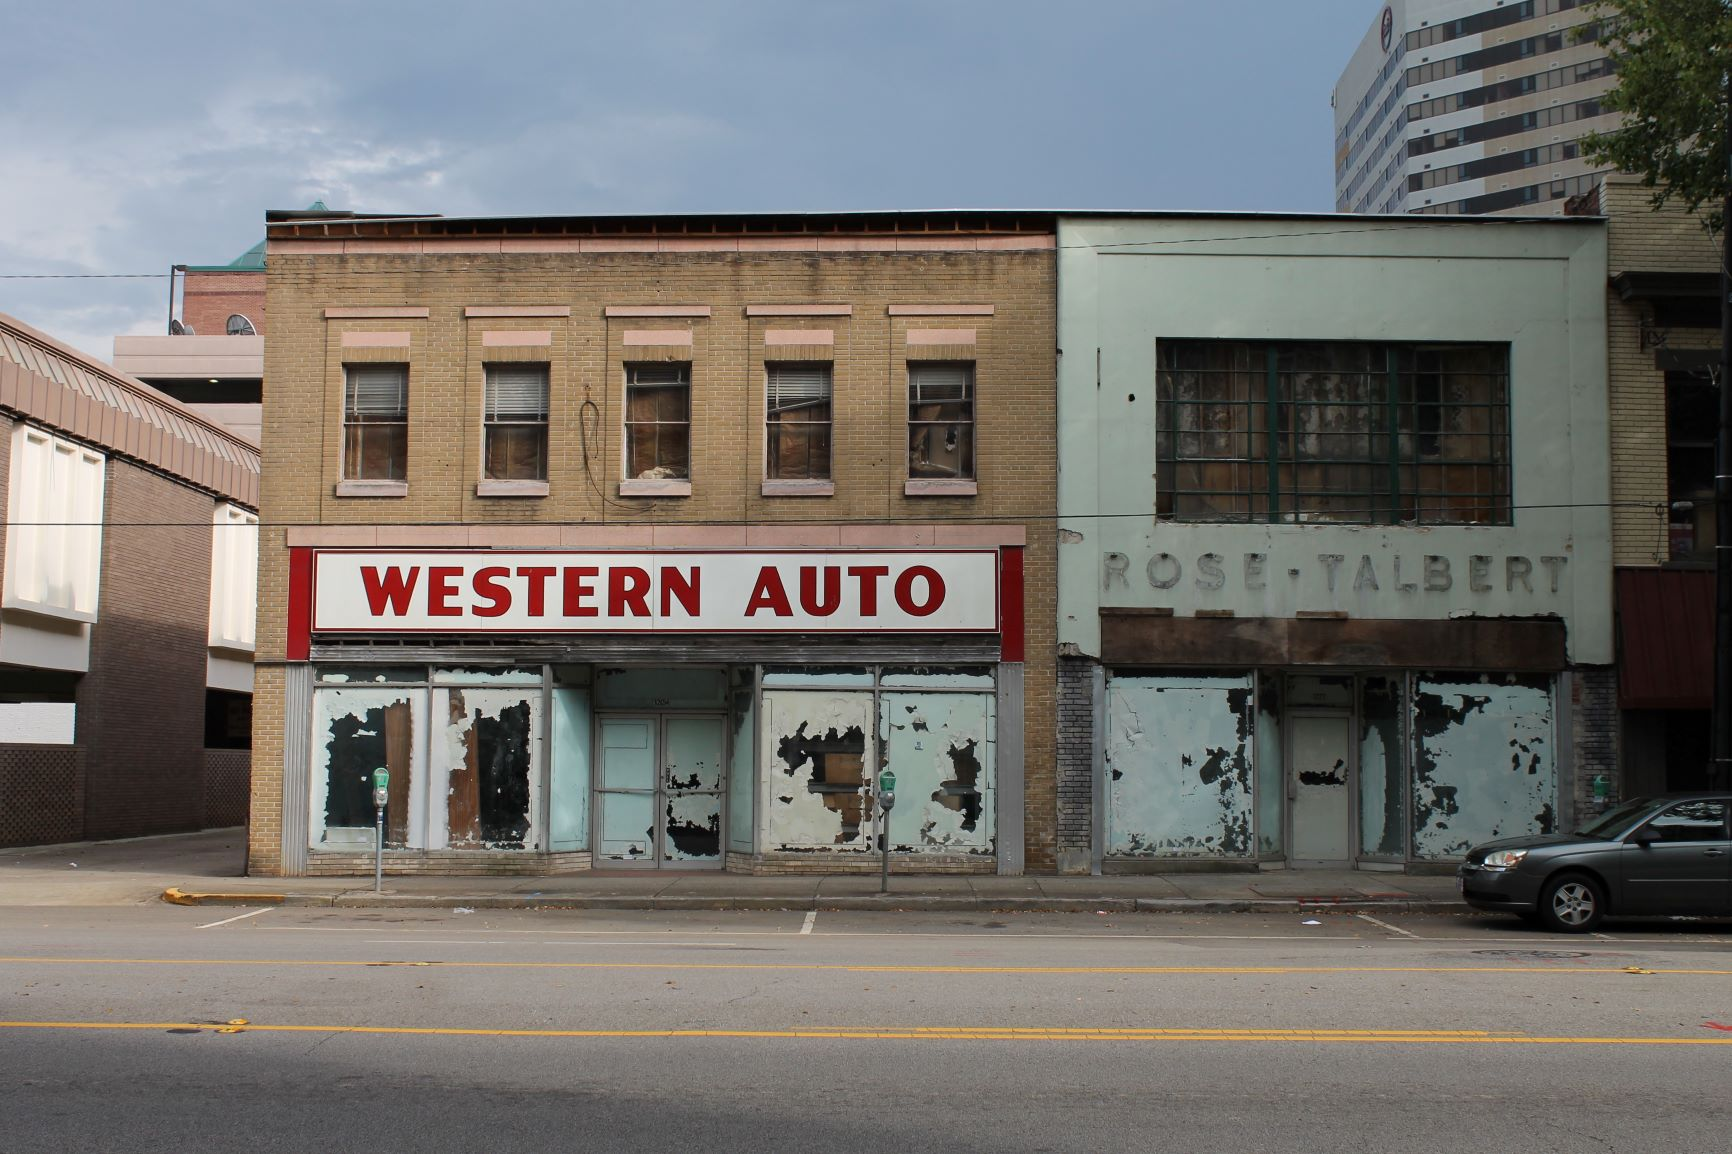 The Western Auto building (1940) and Rose-Talbert building (1914) in downtown Columbia